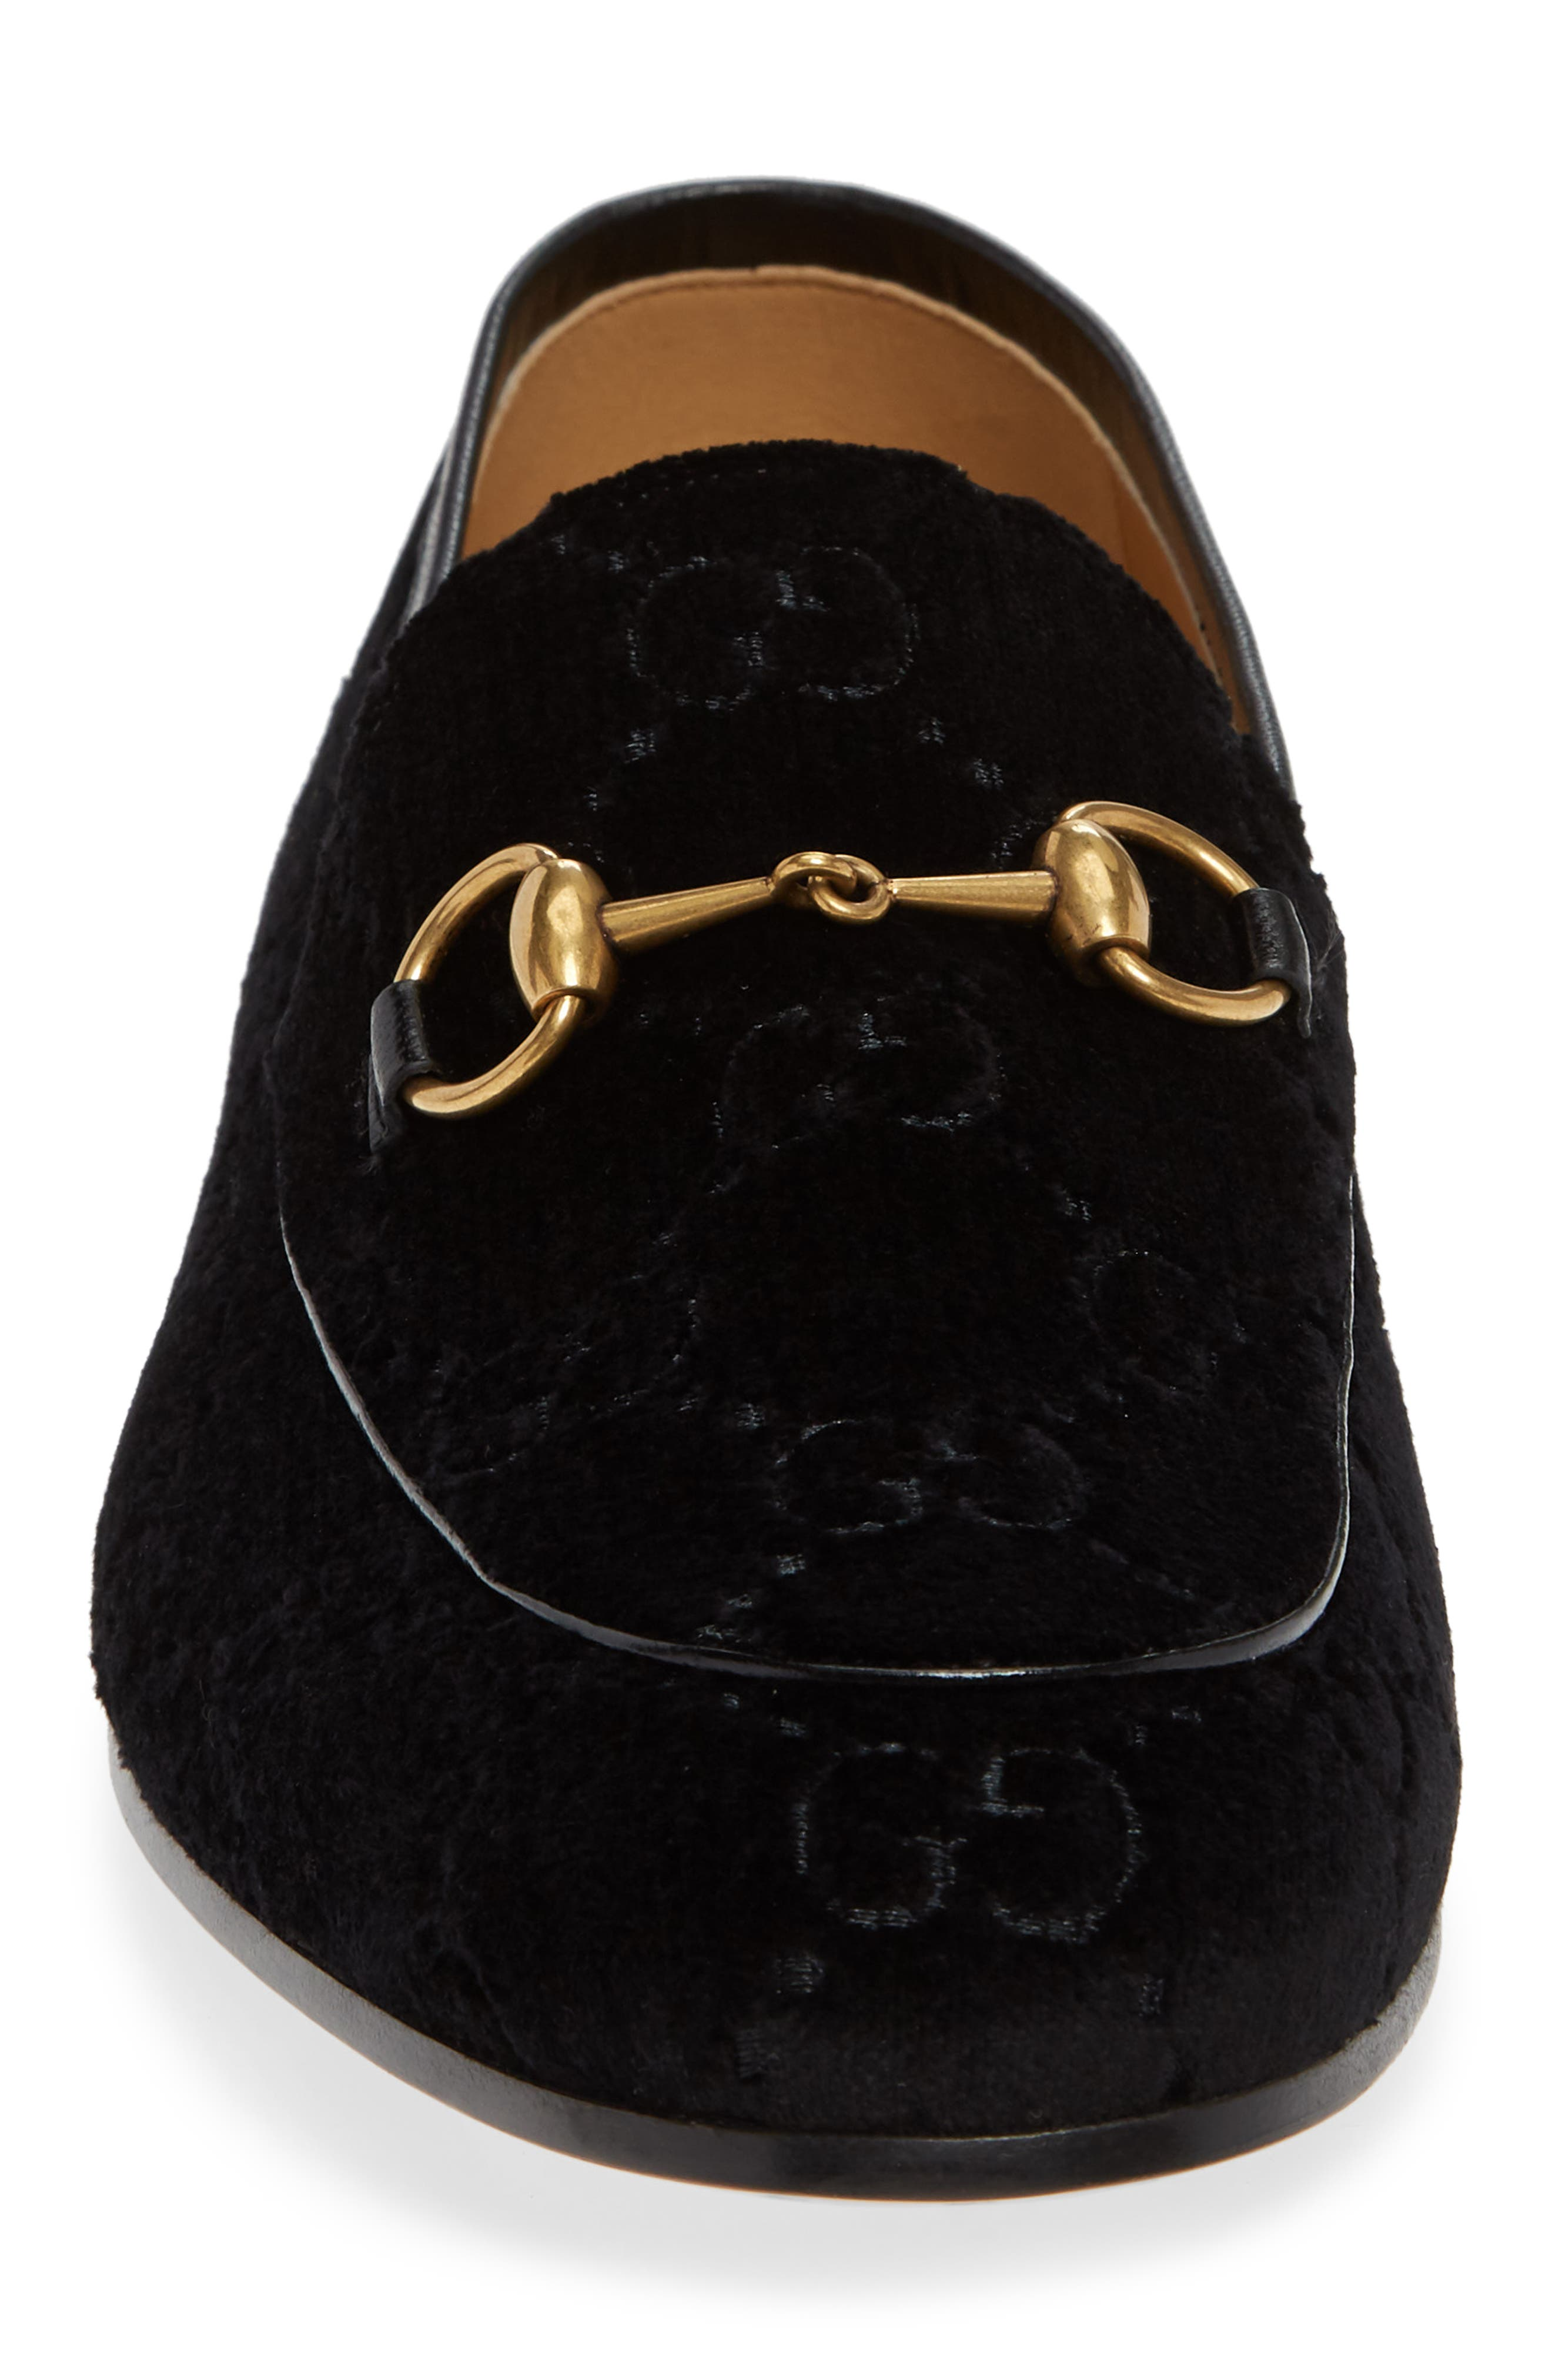 GUCCI, Jordaan GG Velvet Loafer, Alternate thumbnail 4, color, NERO/ NERO